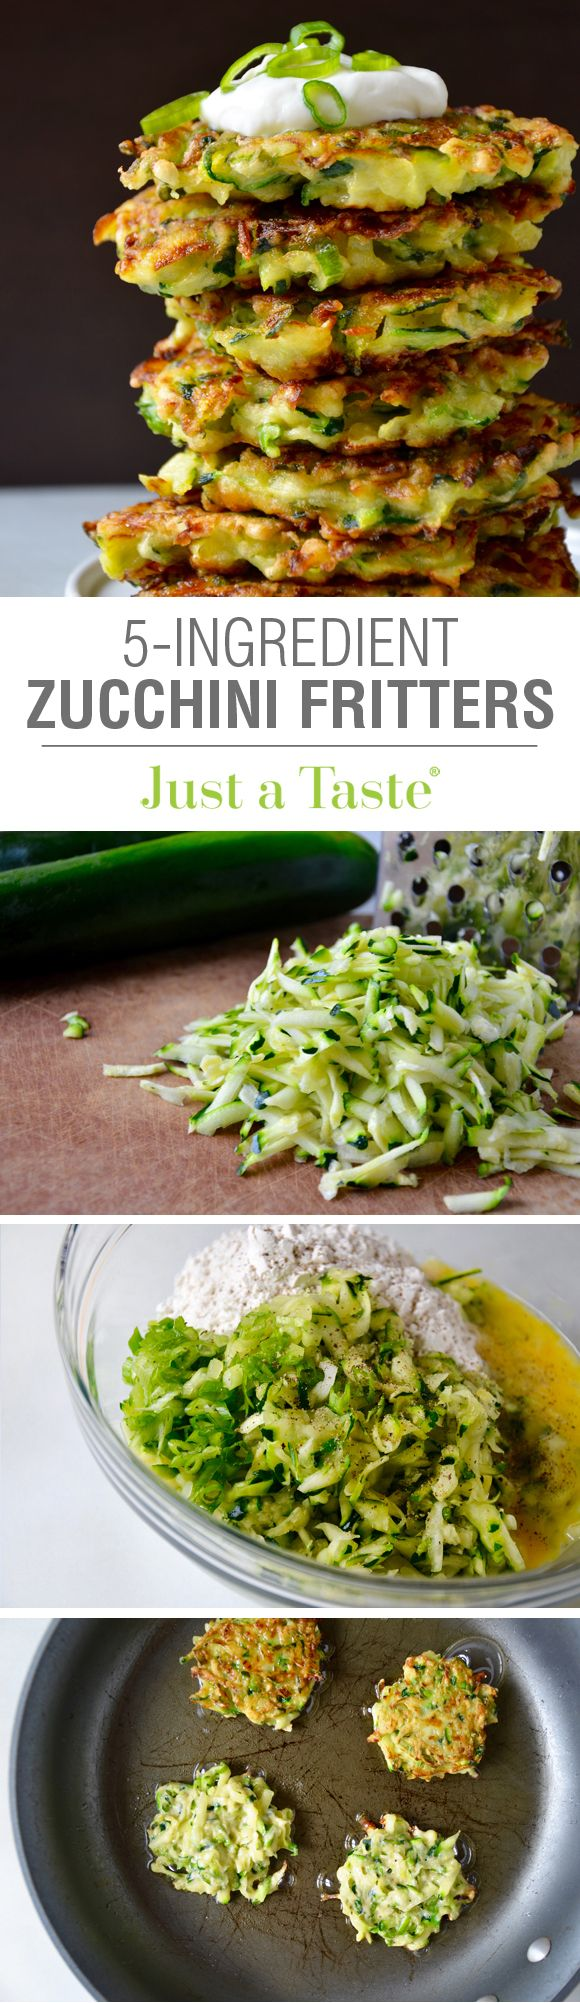 5-Ingredient Zucchini Fritters #recipe, as seen on the @todayshow